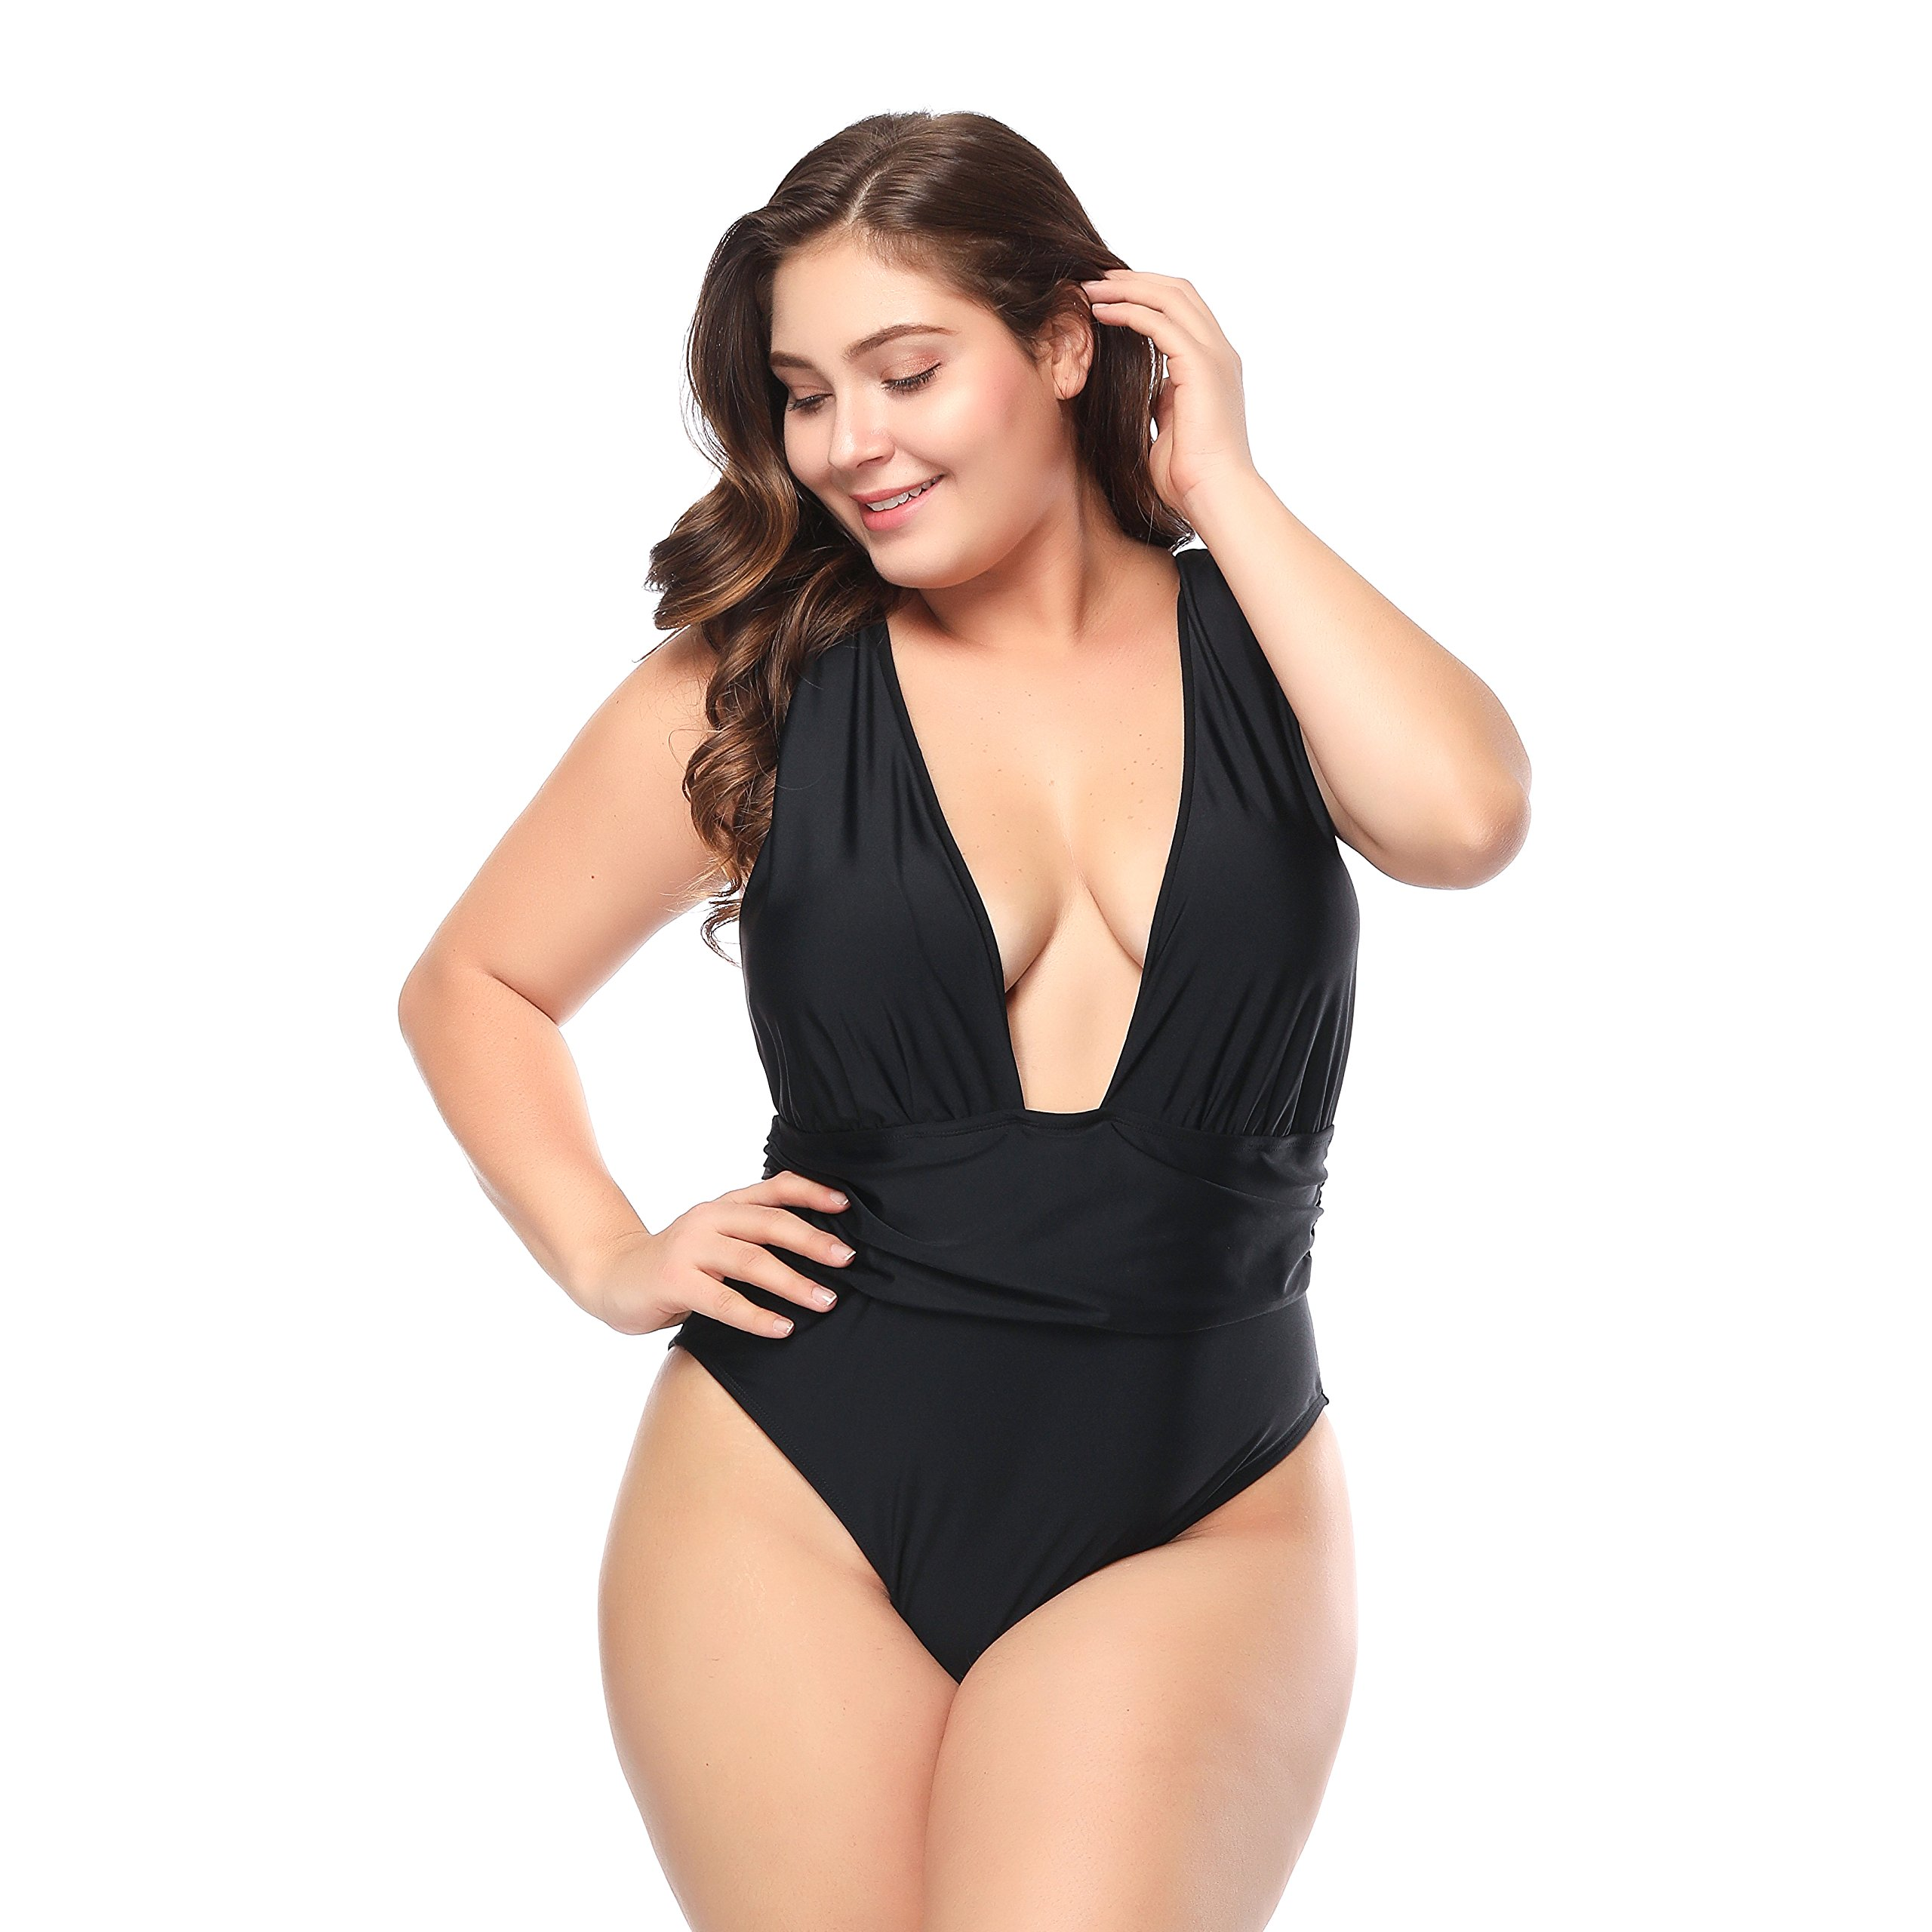 ALVABABY Women Fashion Plus Size Swimsuit Swimwear One Piece Bathing Suit (Best Gift for Mother's Day) (Black 02, XXXXX-Large)